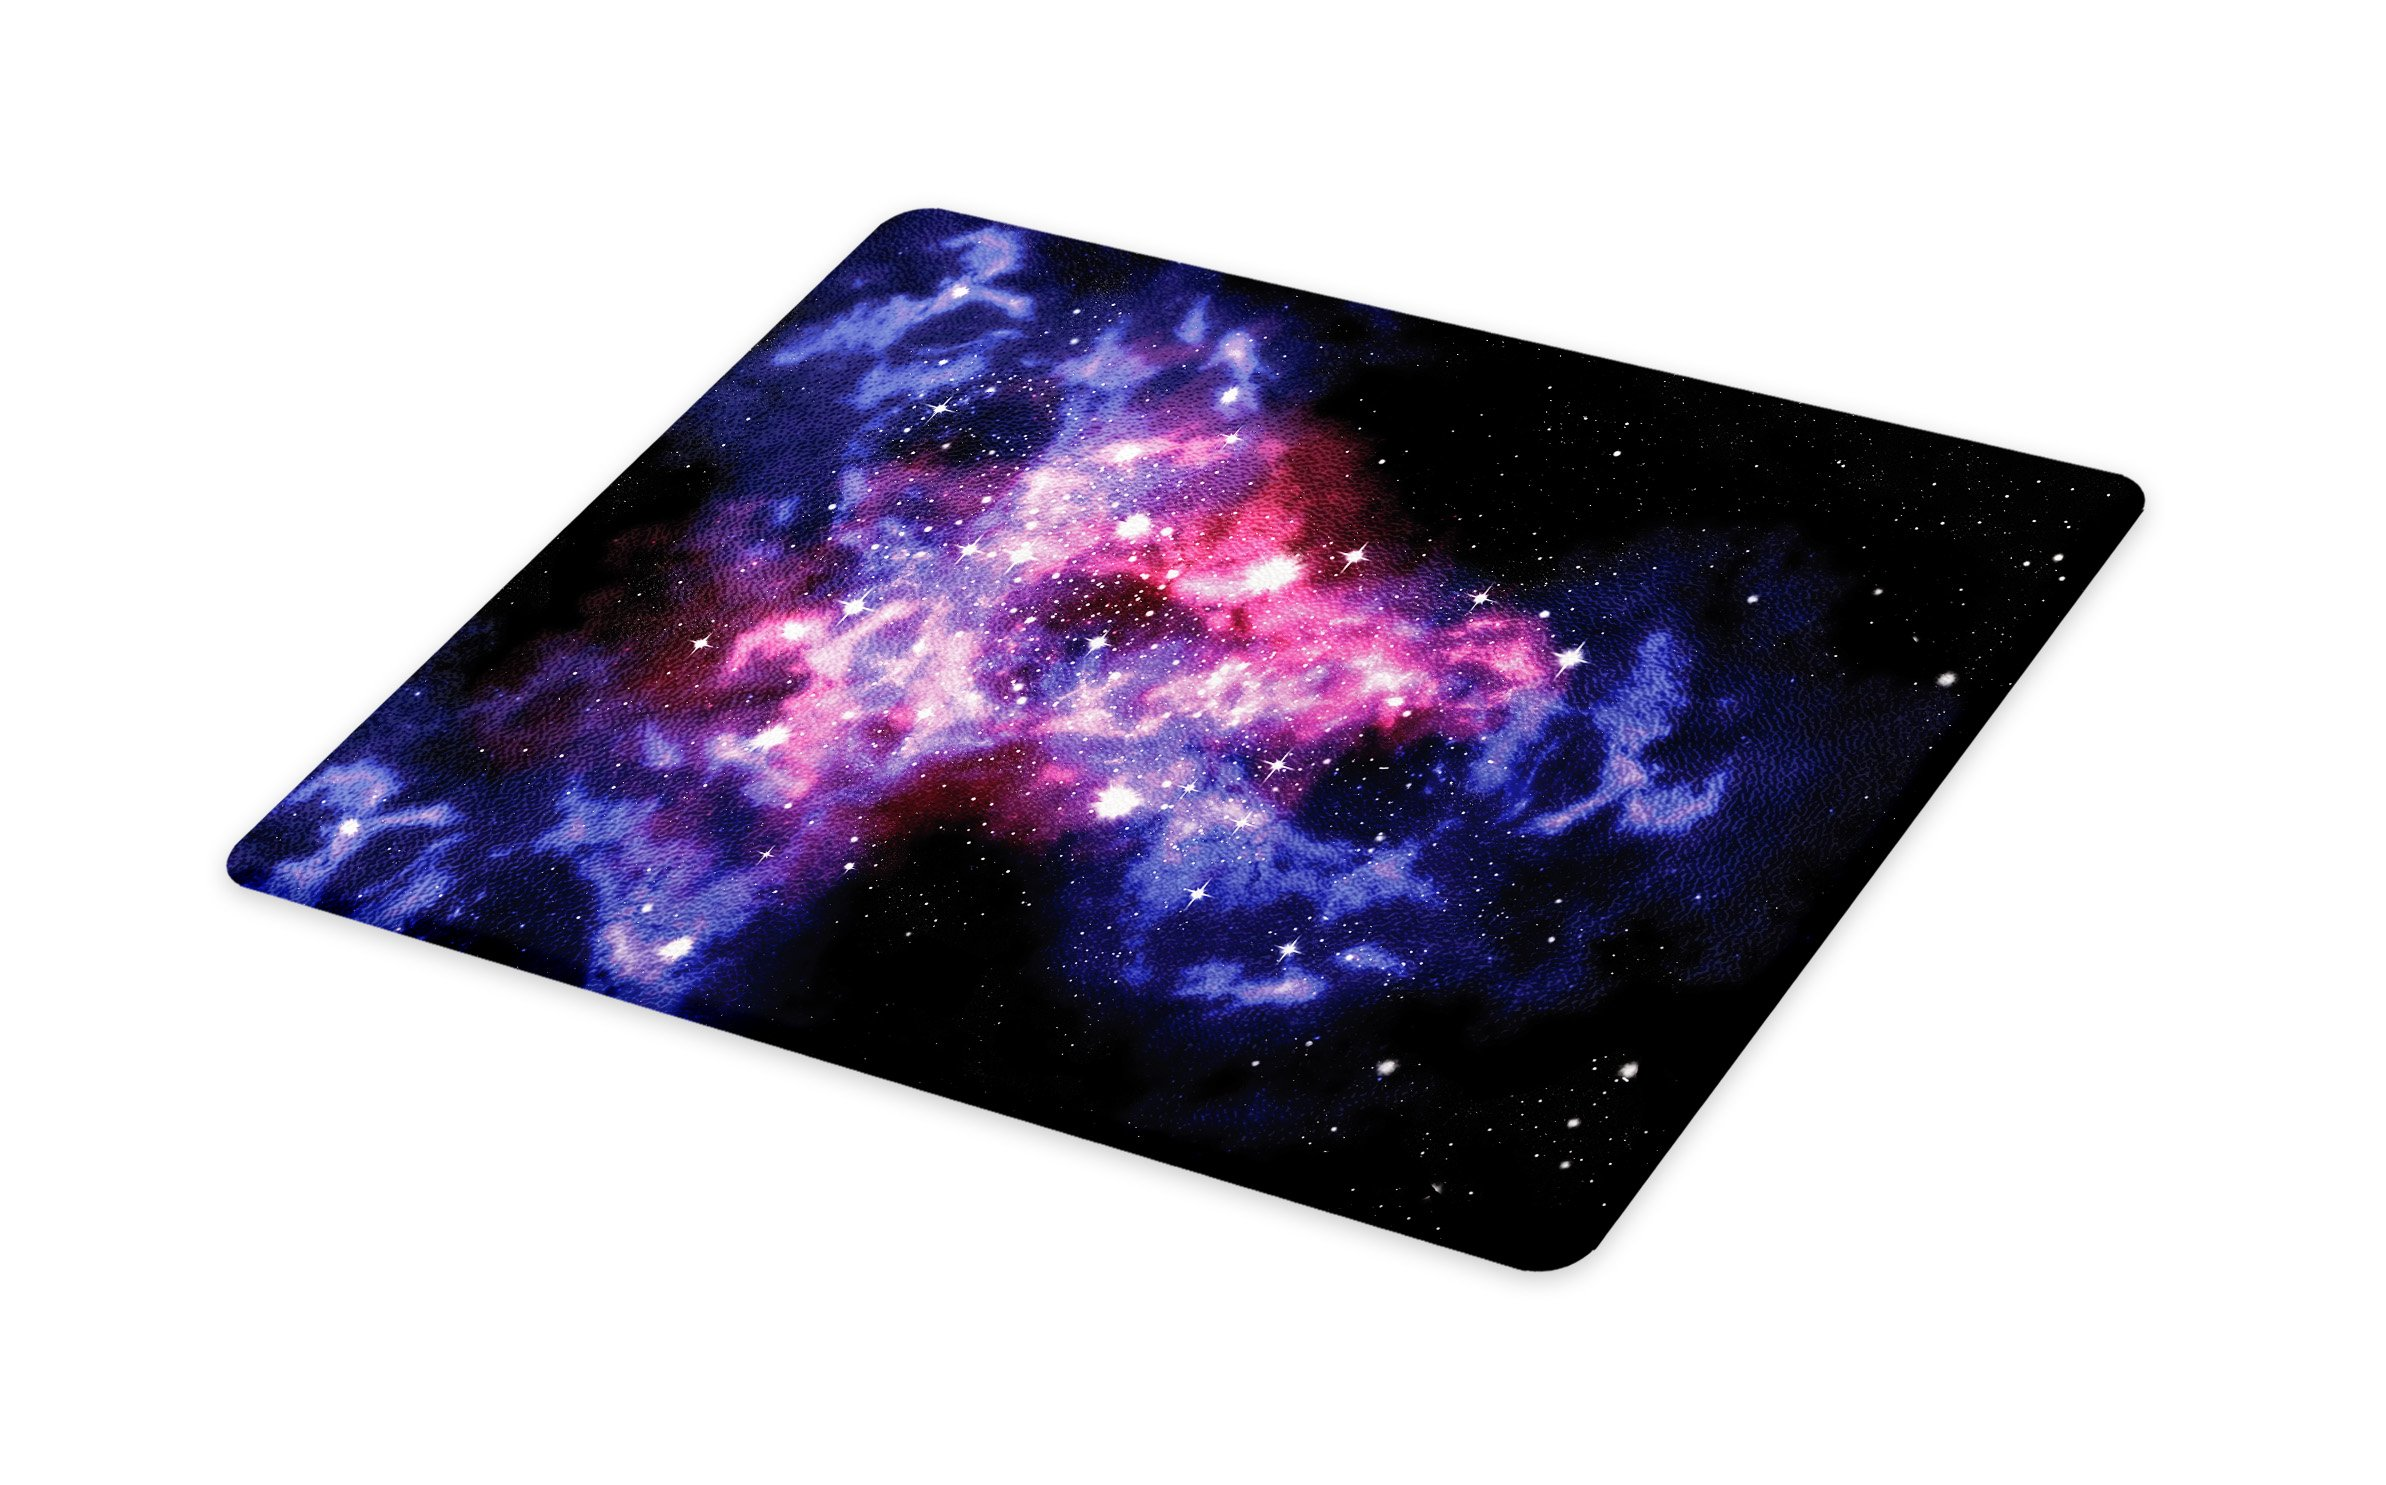 Lunarable Outer Space Cutting Board, Dusty Gas Cloud Nebula and Star Clusters in The Outer Space Cosmos Solar Print, Decorative Tempered Glass Cutting and Serving Board, Small Size, Navy Purple